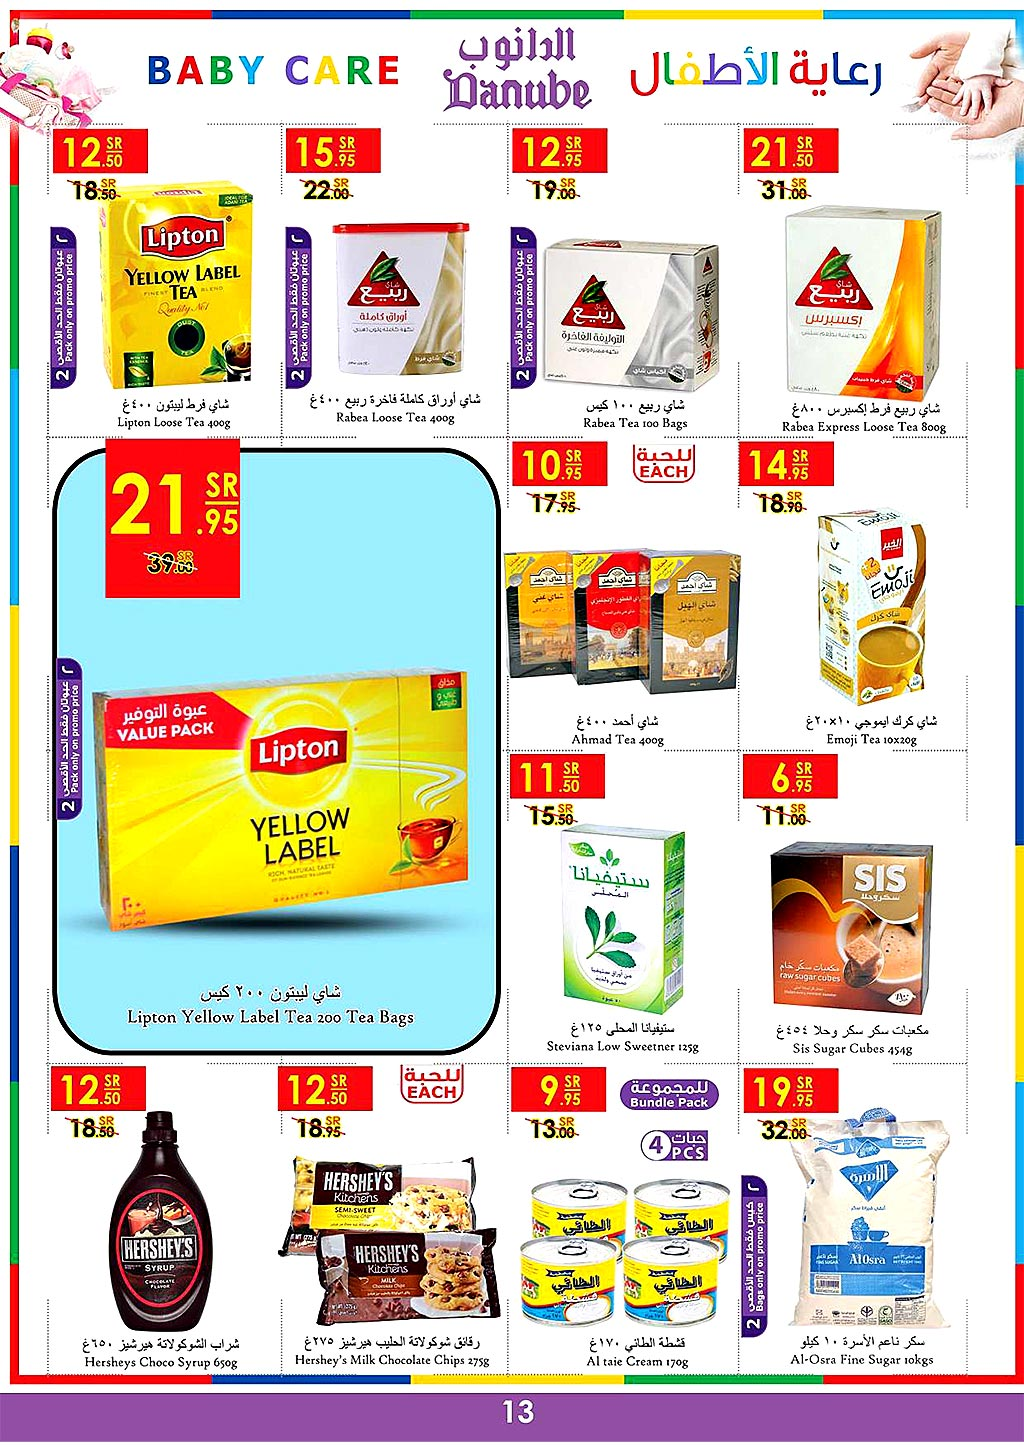 danube offers from 24july to 30july 2019 page number 12 عروض الدانوب من 24 يوليو حتى 30 يوليو 2019 صفحة رقم 12